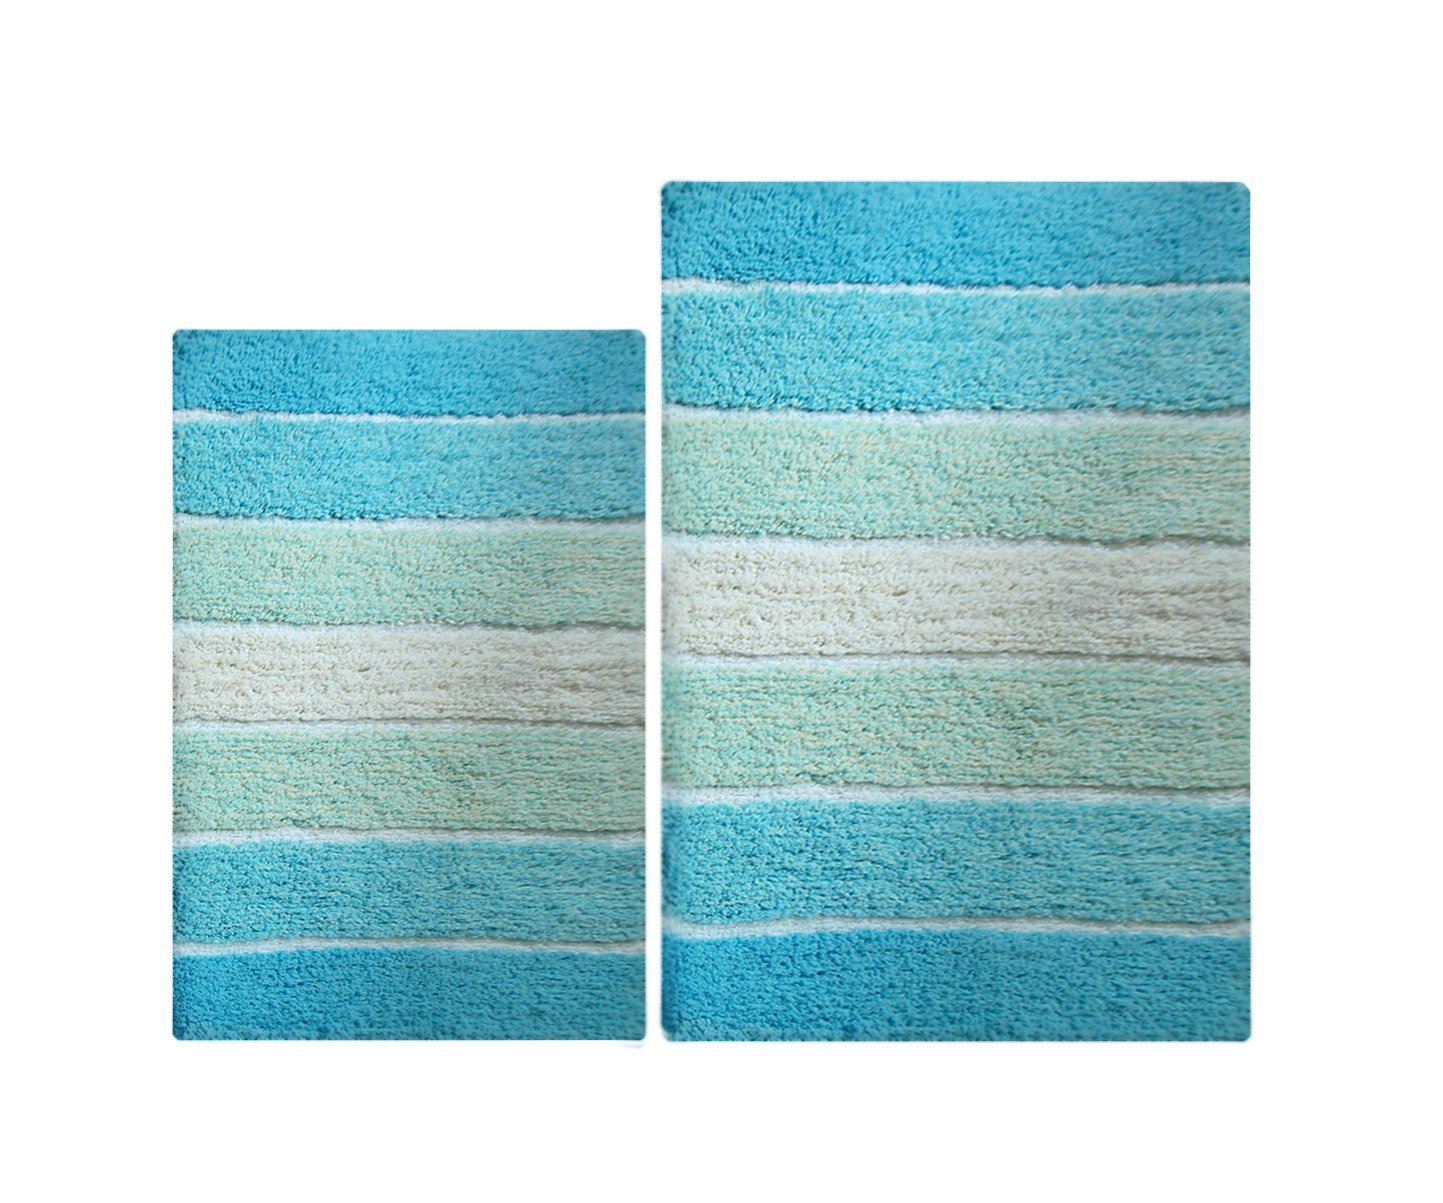 100% Pure Cotton - 2 Piece Cordural Stripe Bath Rug Set, (21''x34'' & 17''x24'') Aqua Turquoise with Latex spray non-skid backing